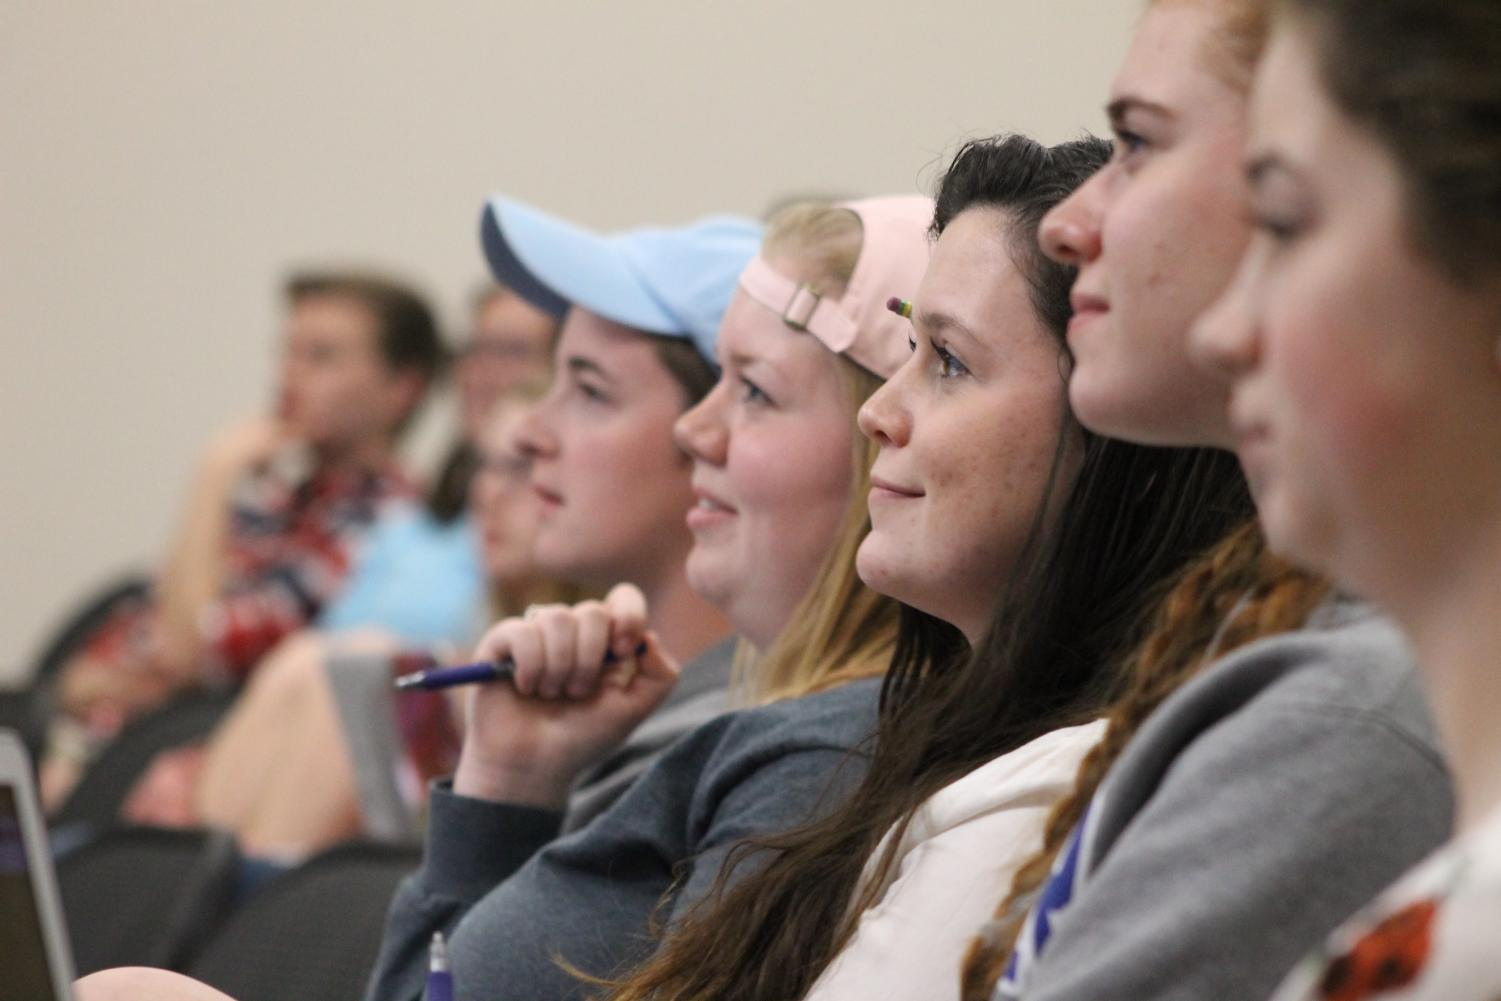 Students listen to Joshua Palkki's lecture on being both a safe person and music educator.